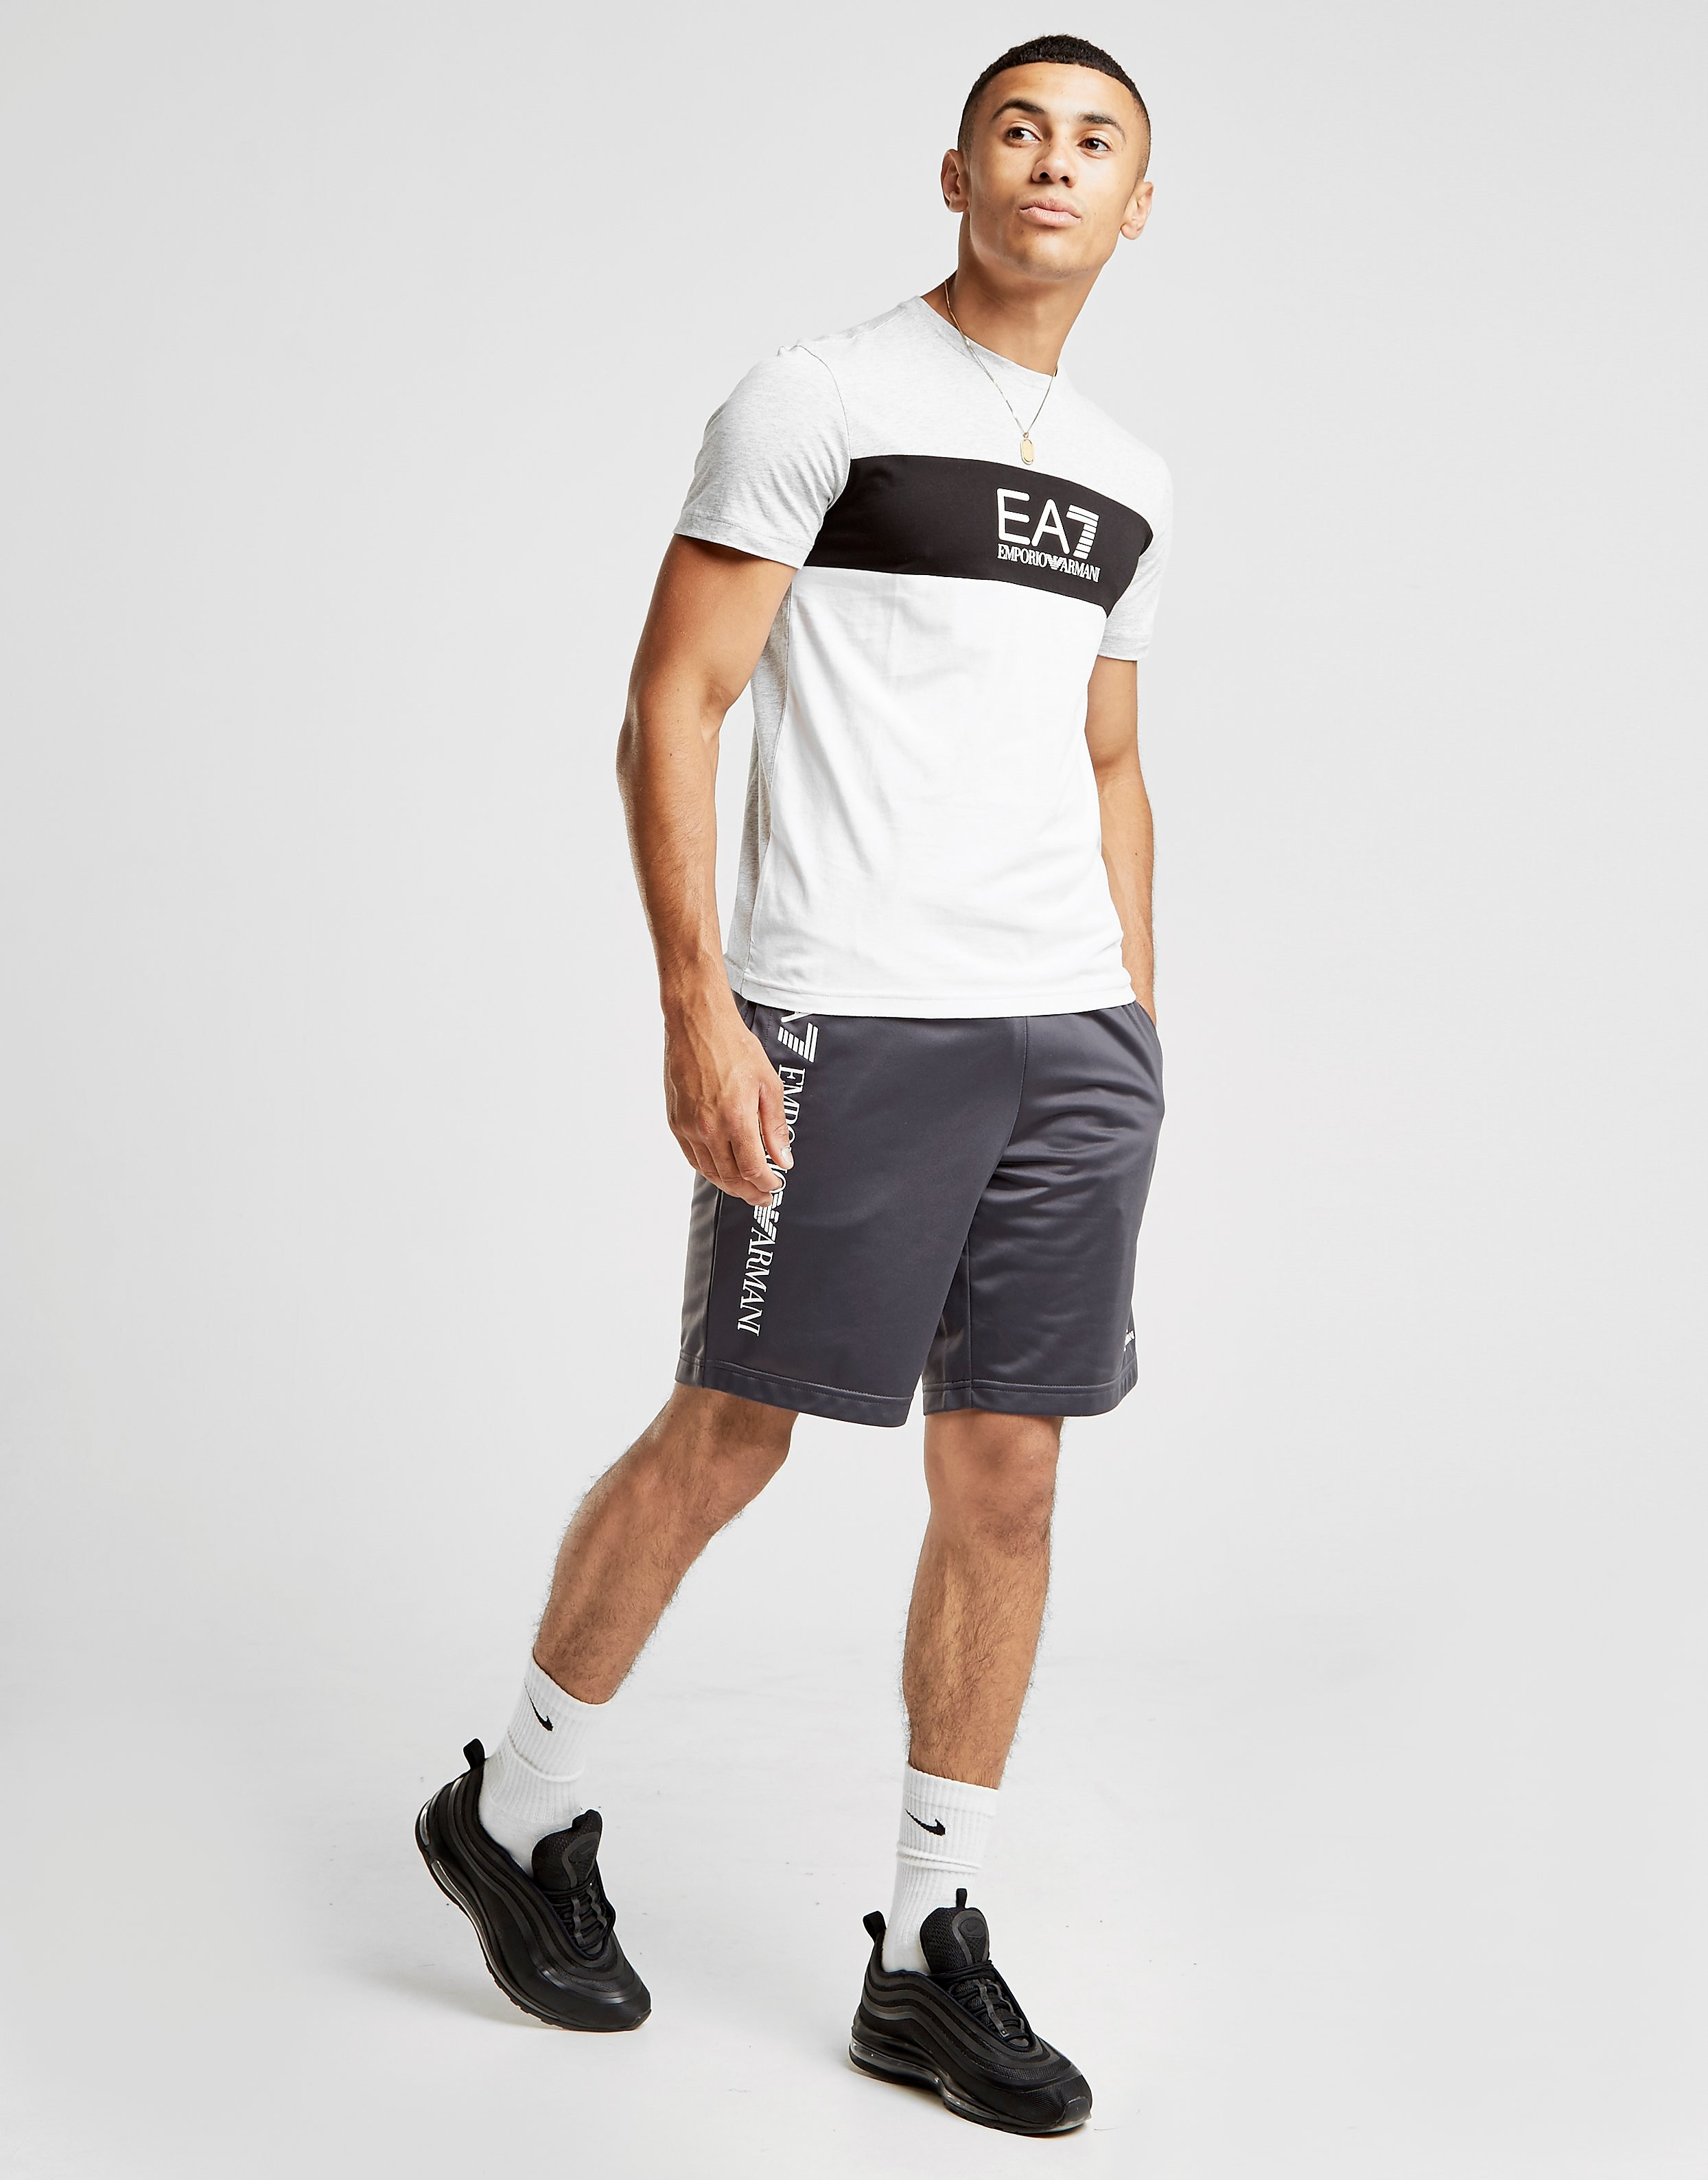 Emporio Armani EA7 Colourblock Central Logo T-Shirt